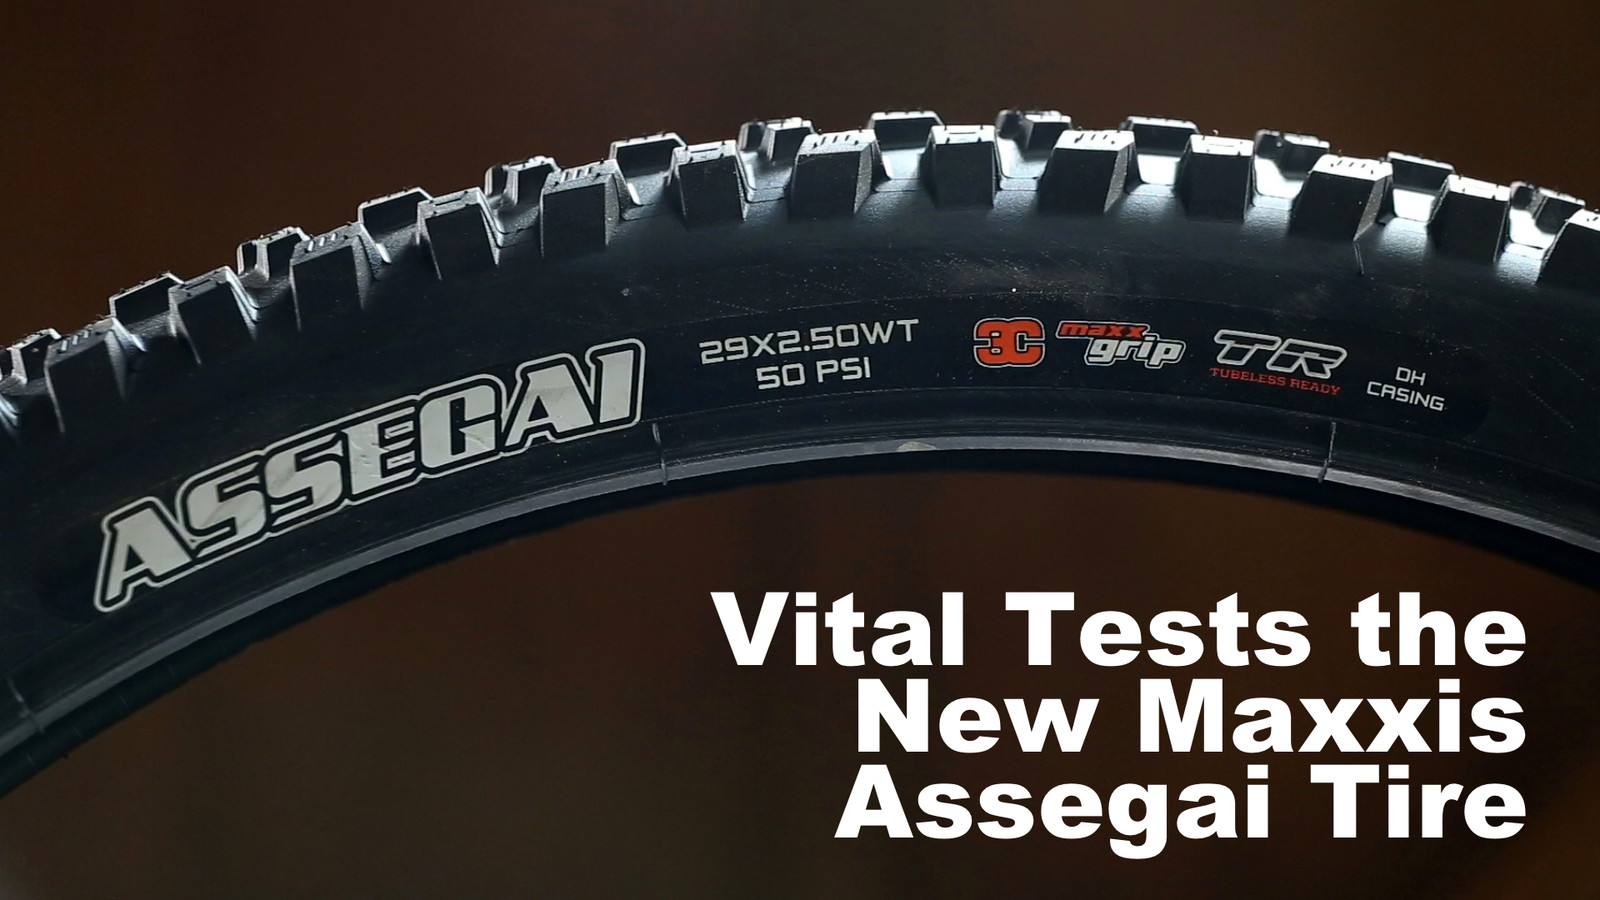 Vital Tests Greg Minnaar's Maxxis Tire - The Assegai